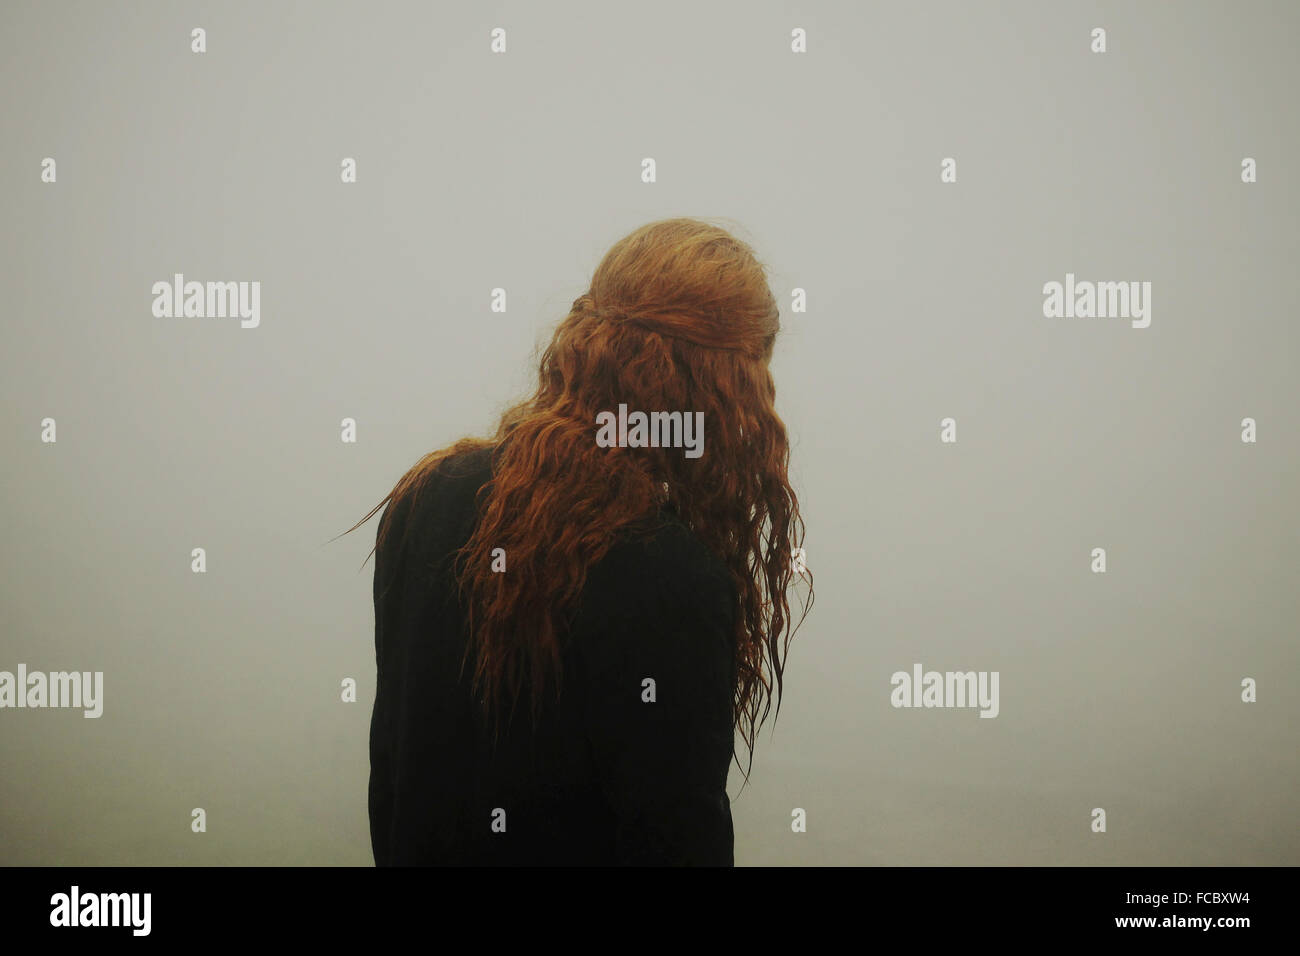 Rear View Of A Woman With Long Red Hair - Stock Image